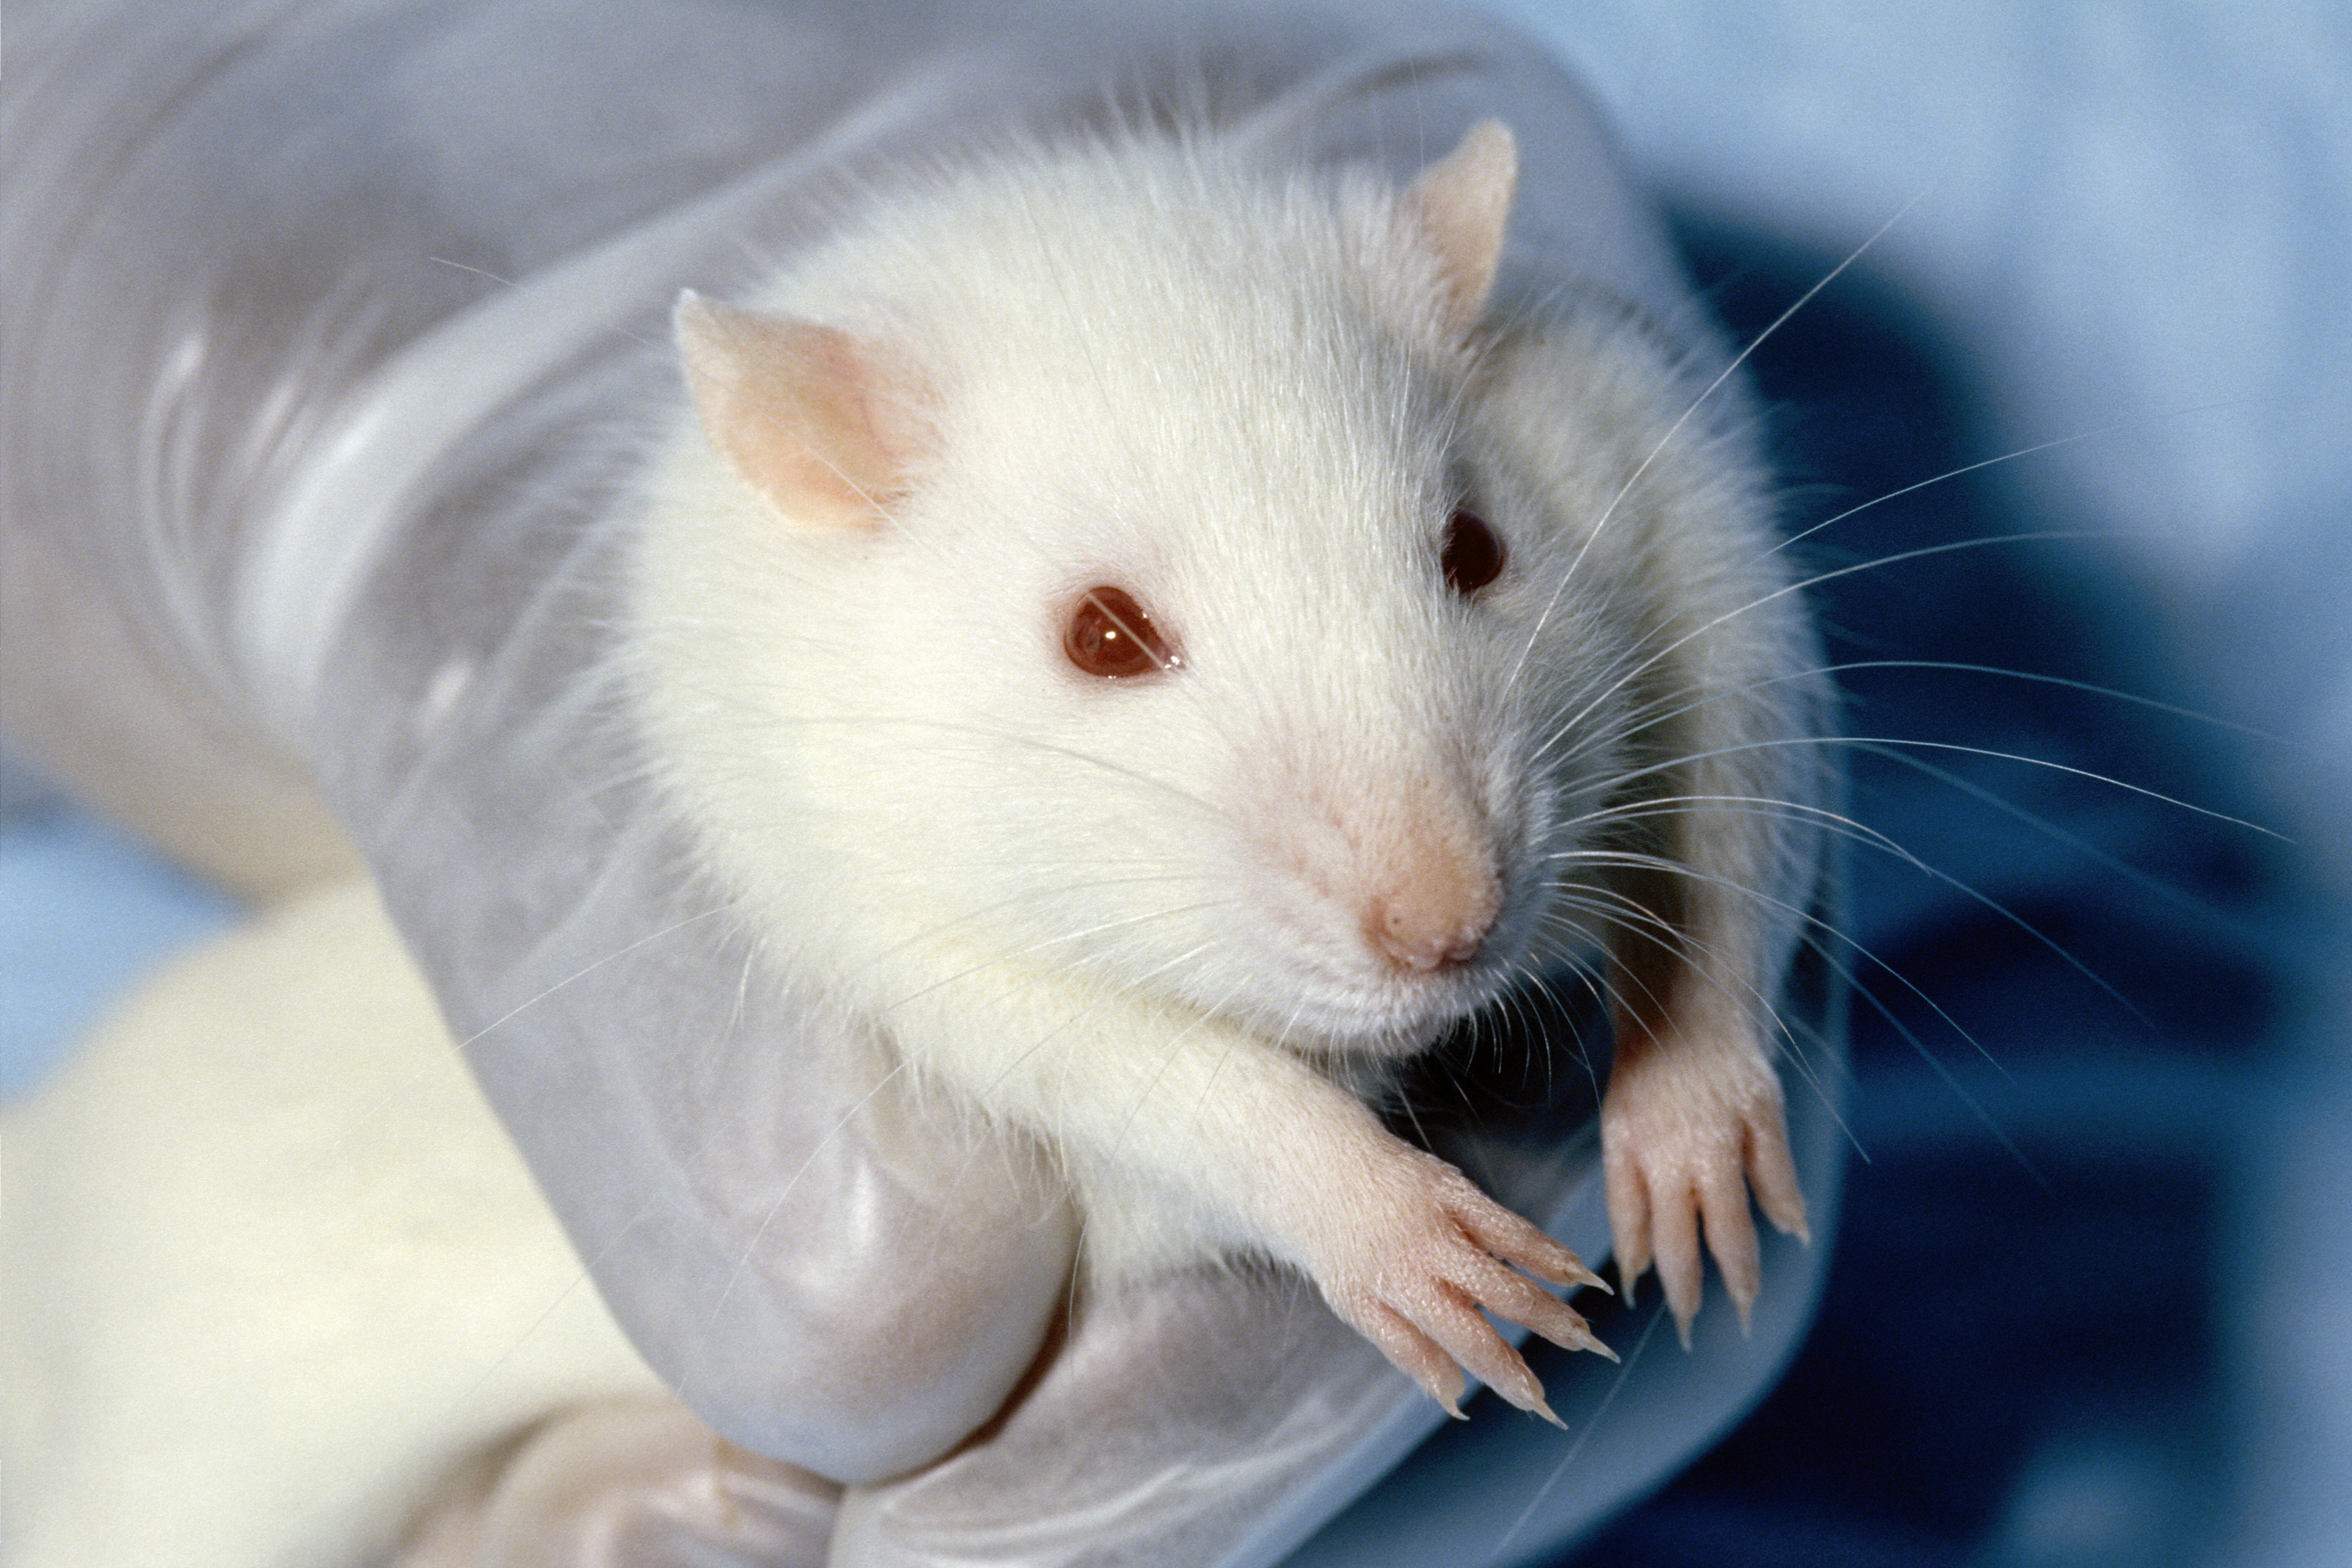 An gloved hand holds a white rat.